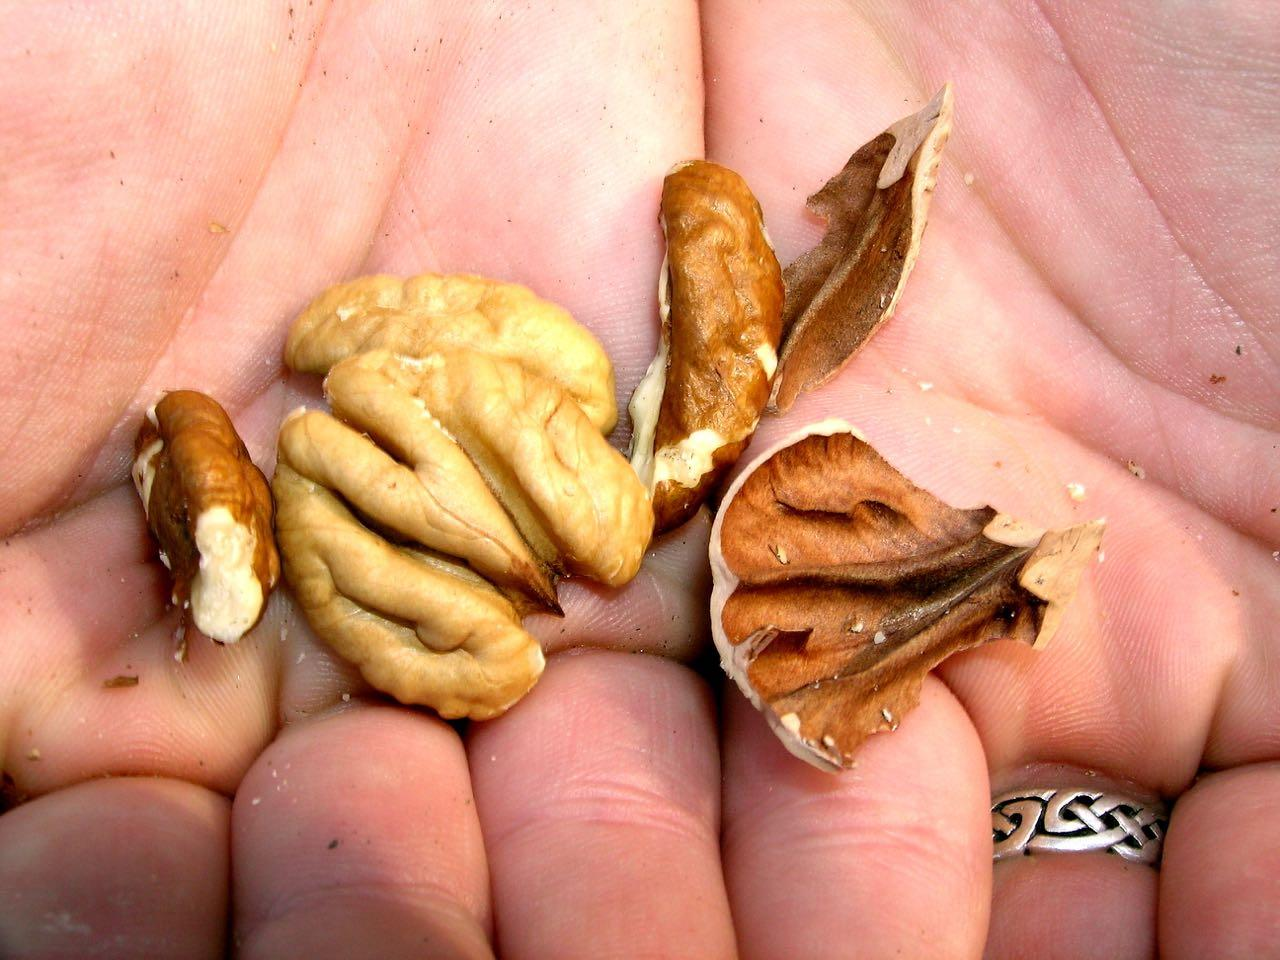 Close up of hickory-pecan nuts in a person's hands